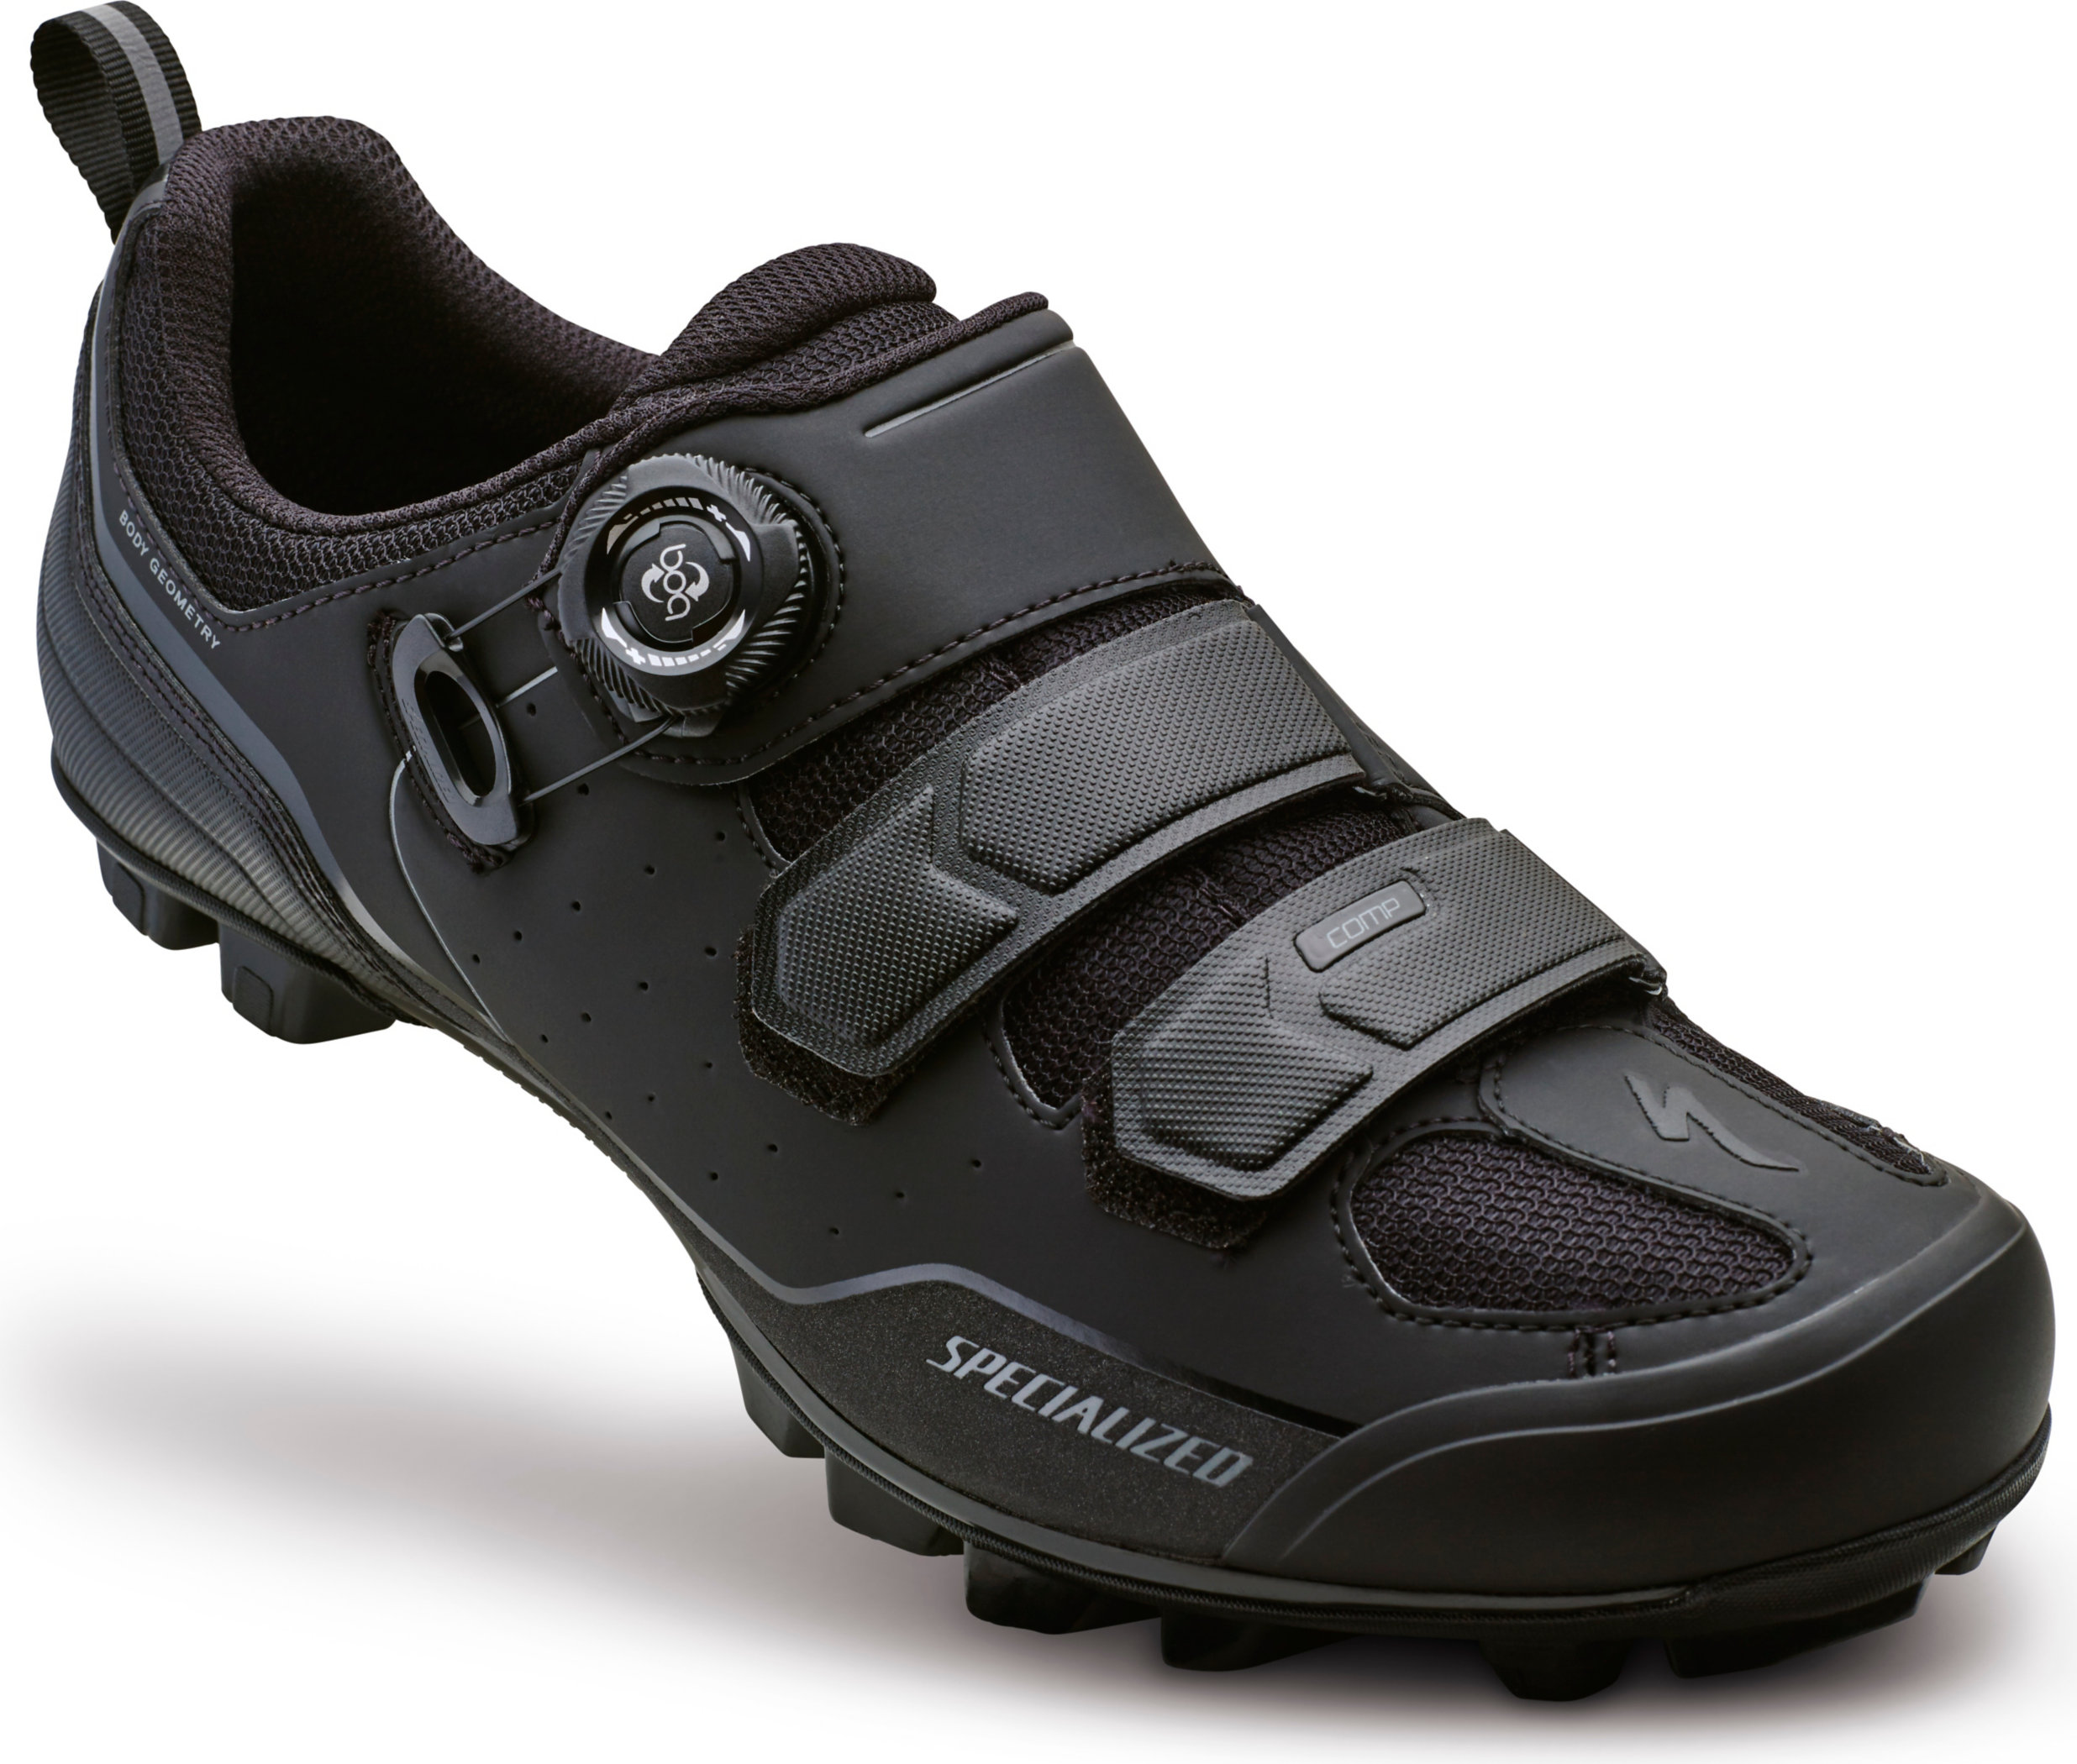 SPECIALIZED COMP MTB SHOE BLK/DKGRY 38/5.75 - Alpha Bikes